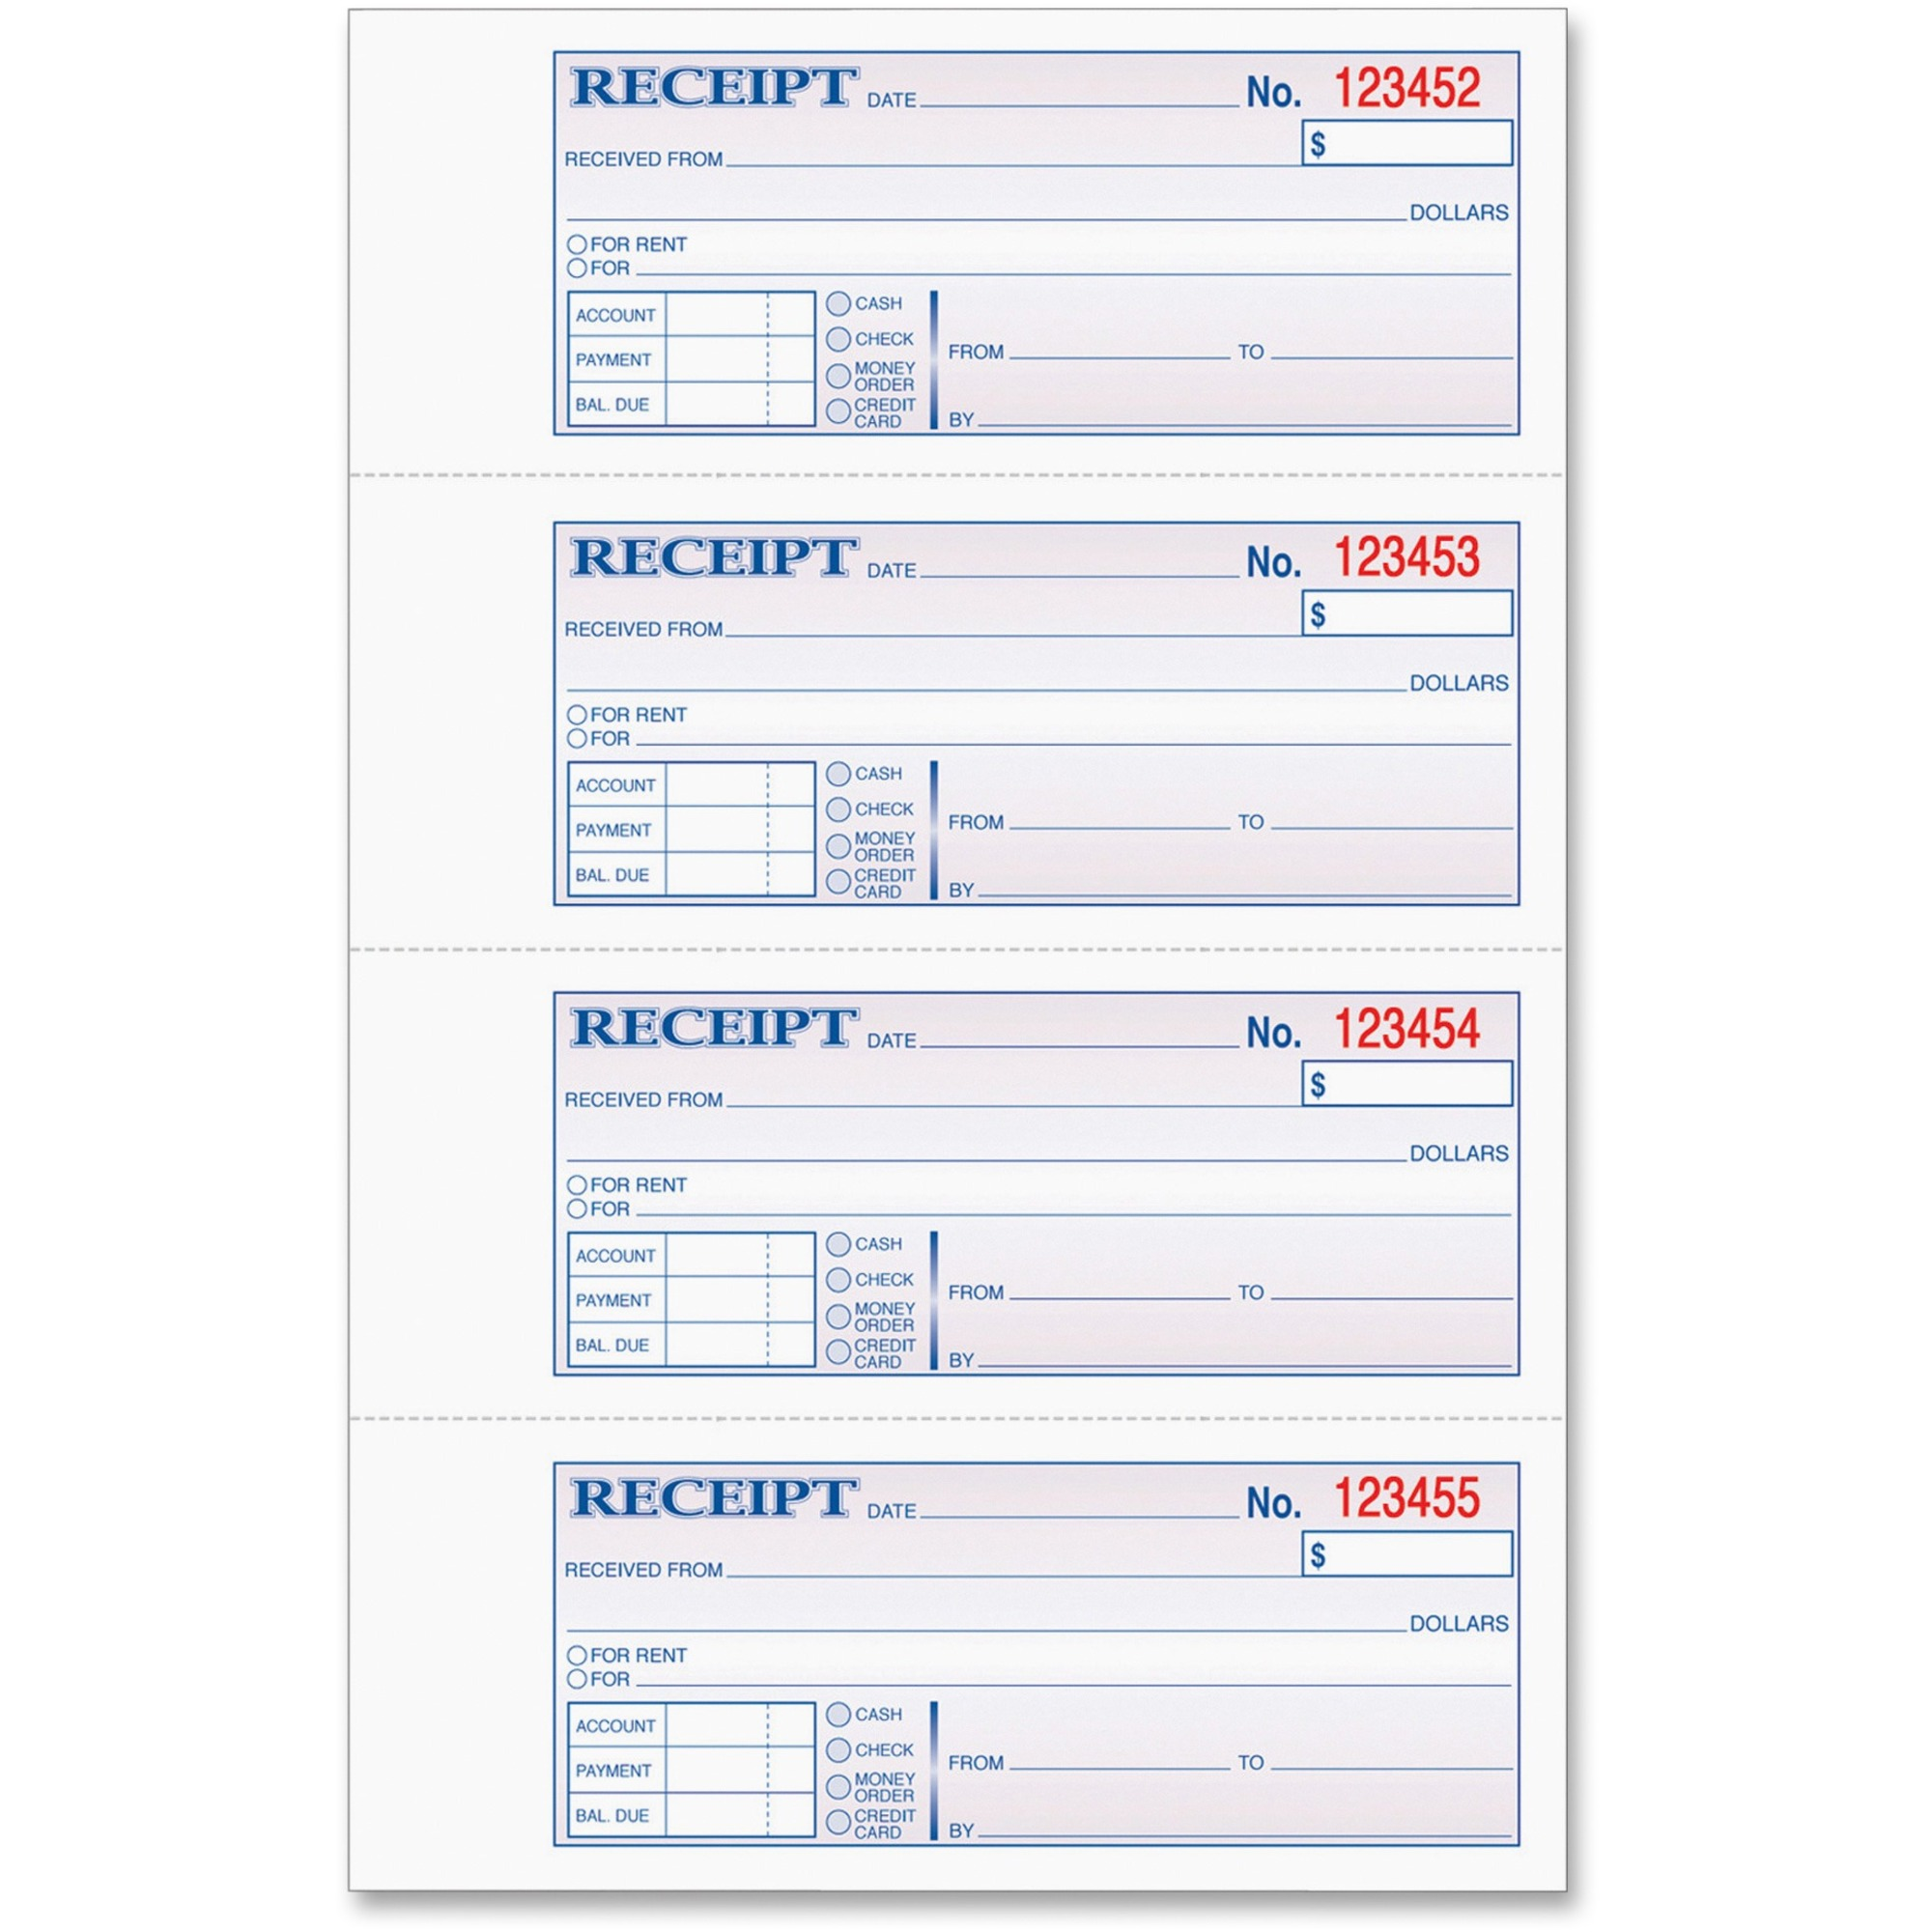 photo regarding Printable Receipt Book named Tops Solutions Tops Dollars/hire Receipt E book - 3 Aspect - Carbonless Reproduction - 2 3/4 X 7 1/4 Sheet Dimensions - Different Sheet(S) - Blue Print Coloration - 1 Just about every